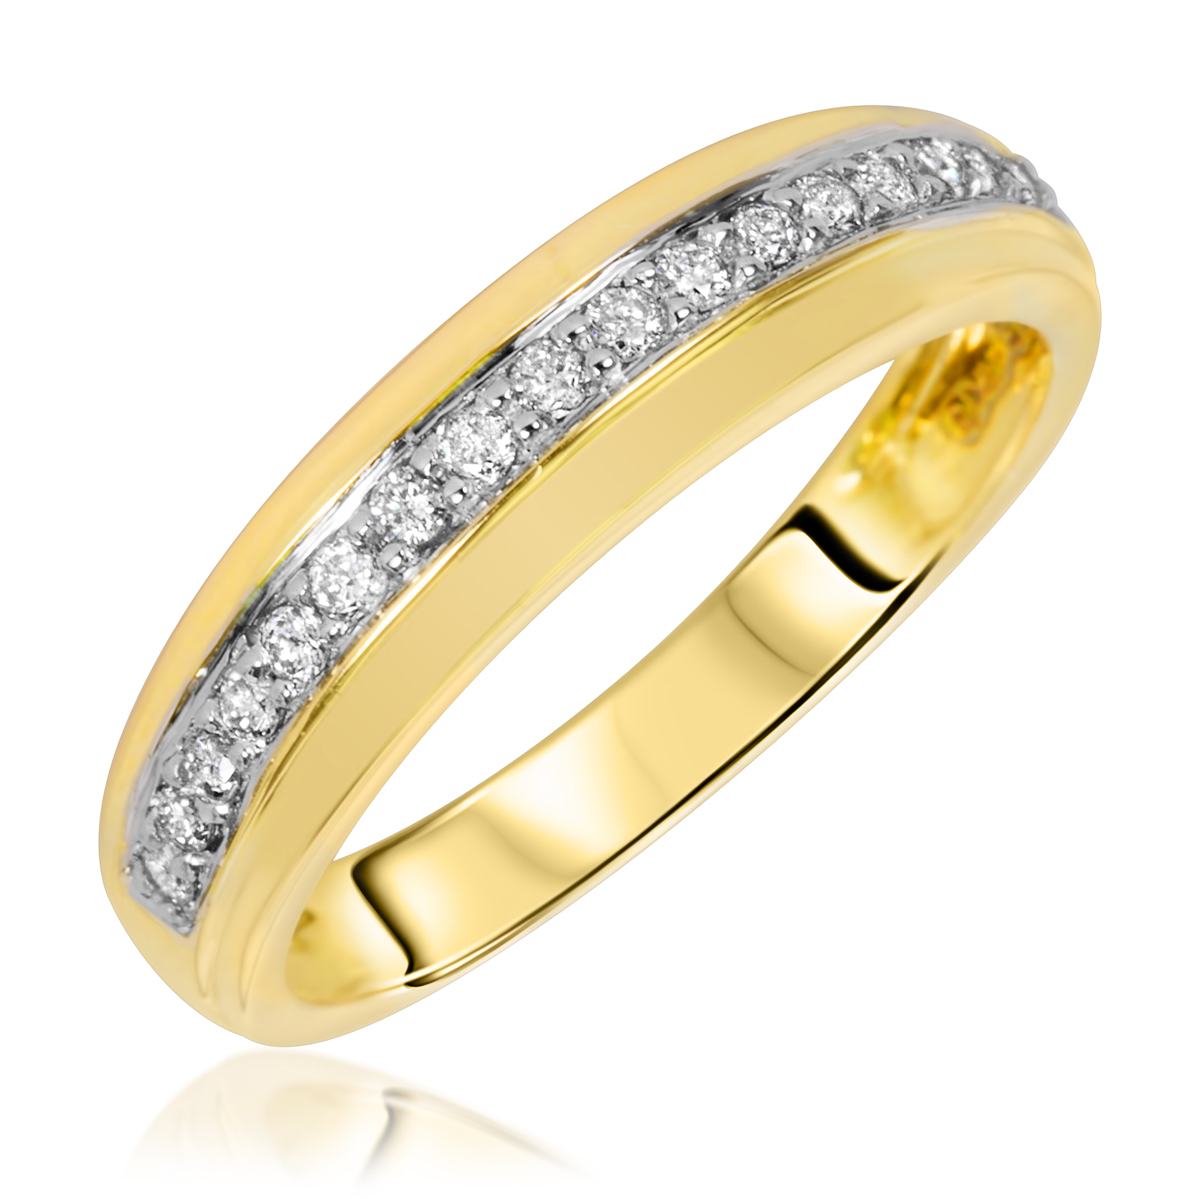 13 carat tw diamond matching wedding rings set 10k yellow gold my trio rings wb114y10k